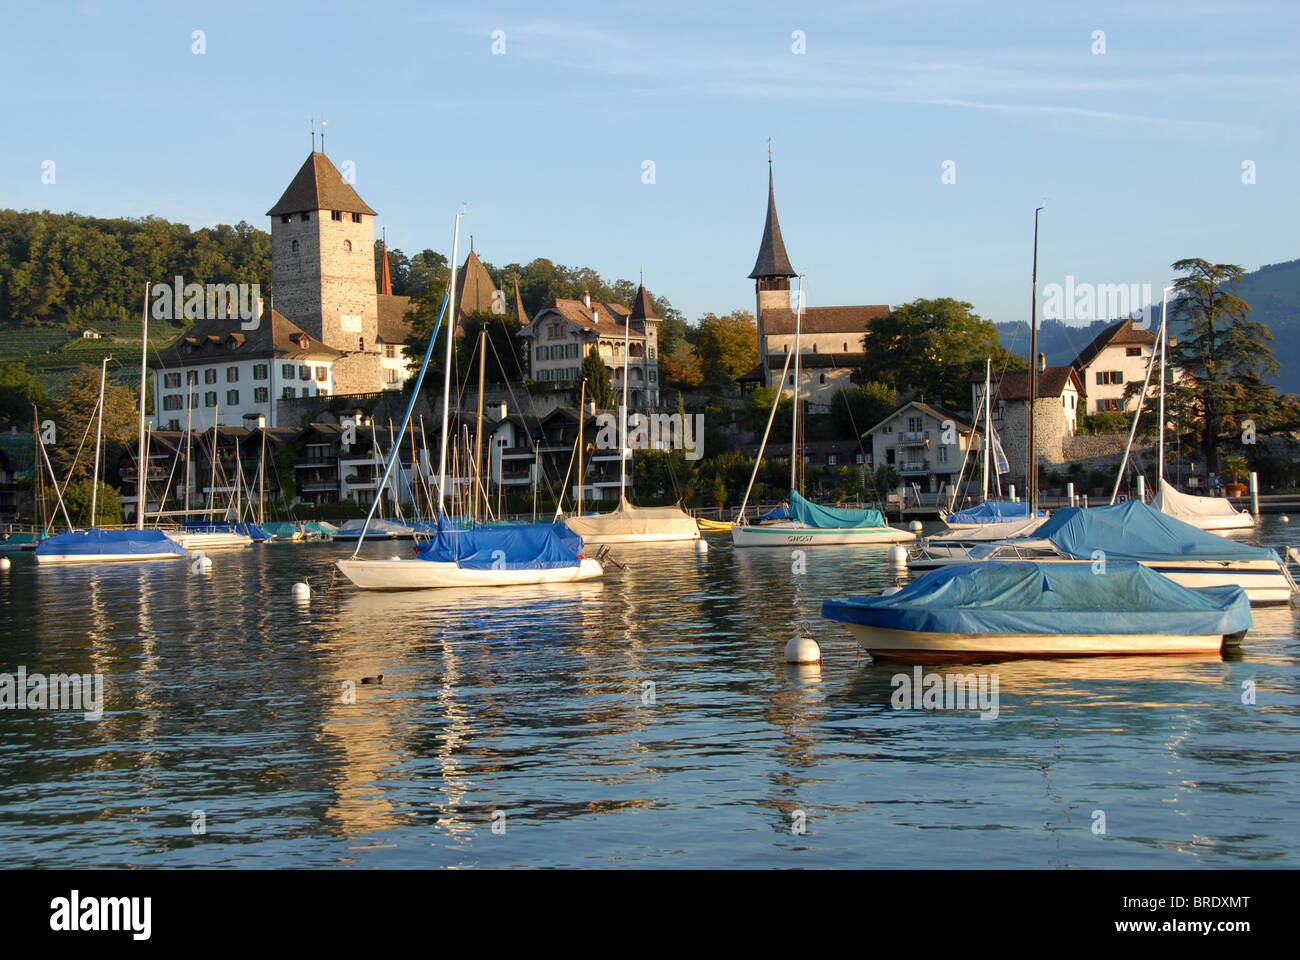 Castle Spiez on Lake Thun, Bernese Oberland, Switzerland Stock Photo